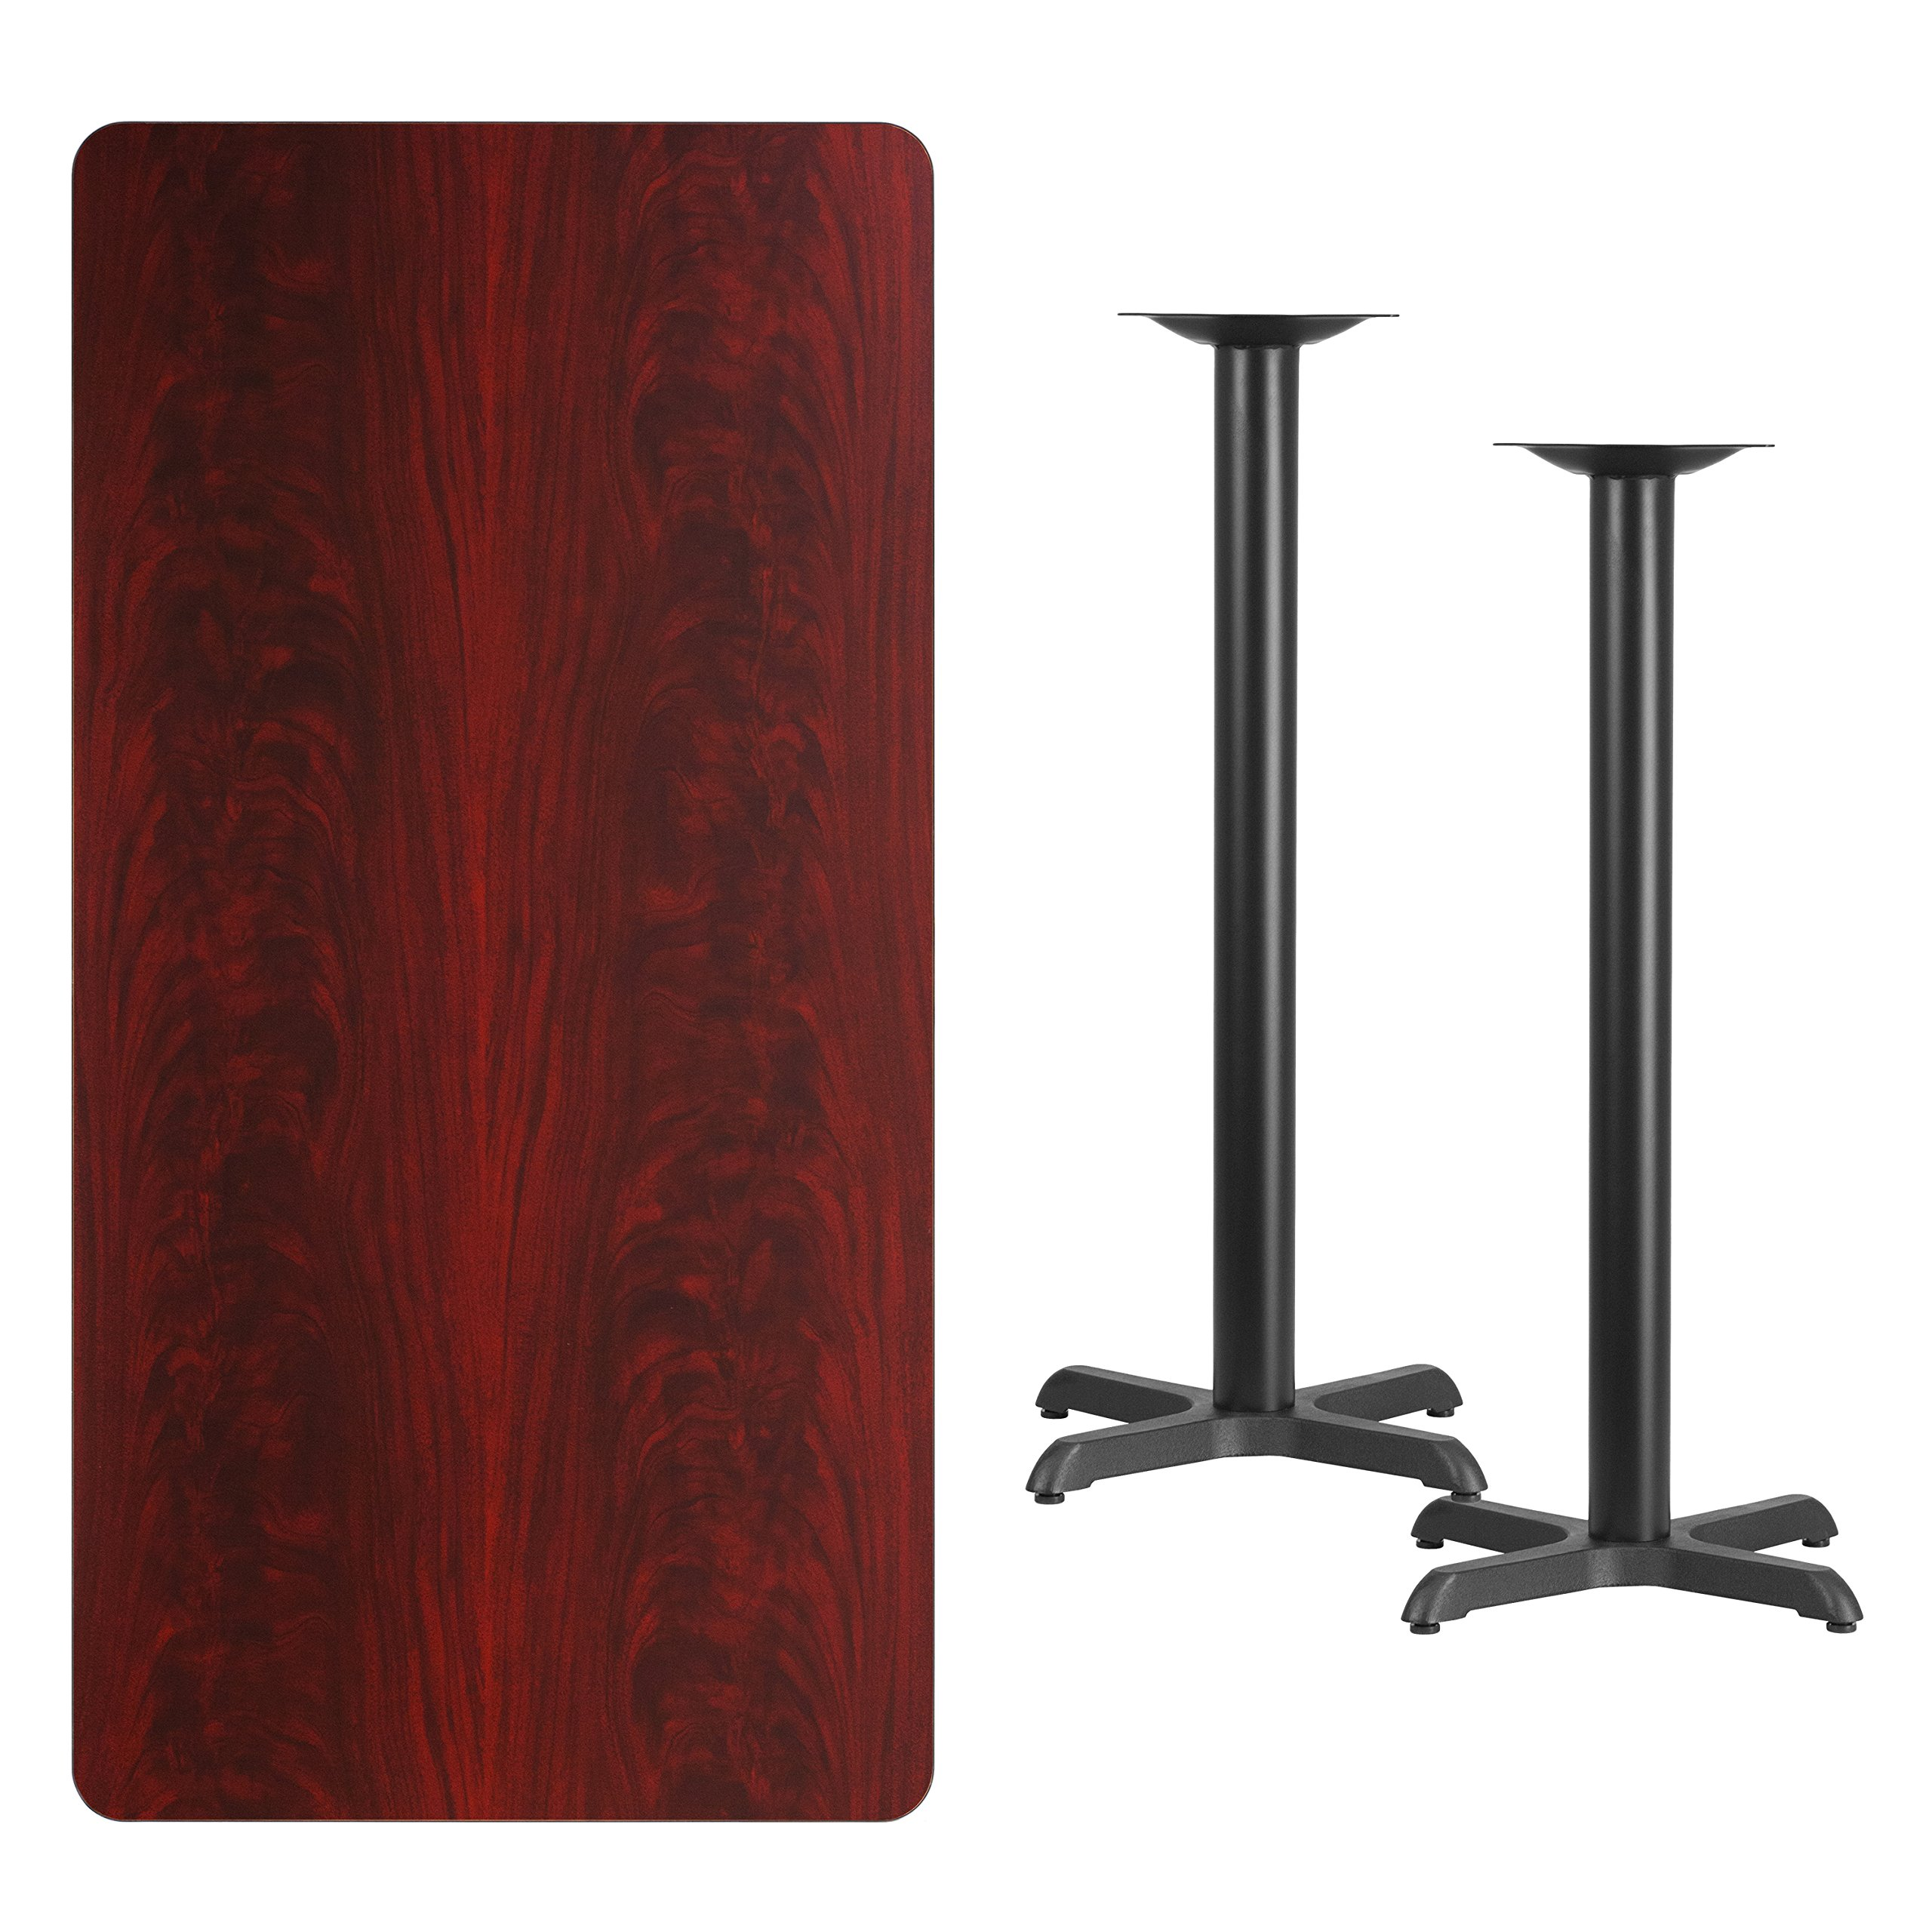 My Friendly Office MFO 30'' x 60'' Rectangular Mahogany Laminate Table Top with 22'' x 22'' Bar Height Table Bases